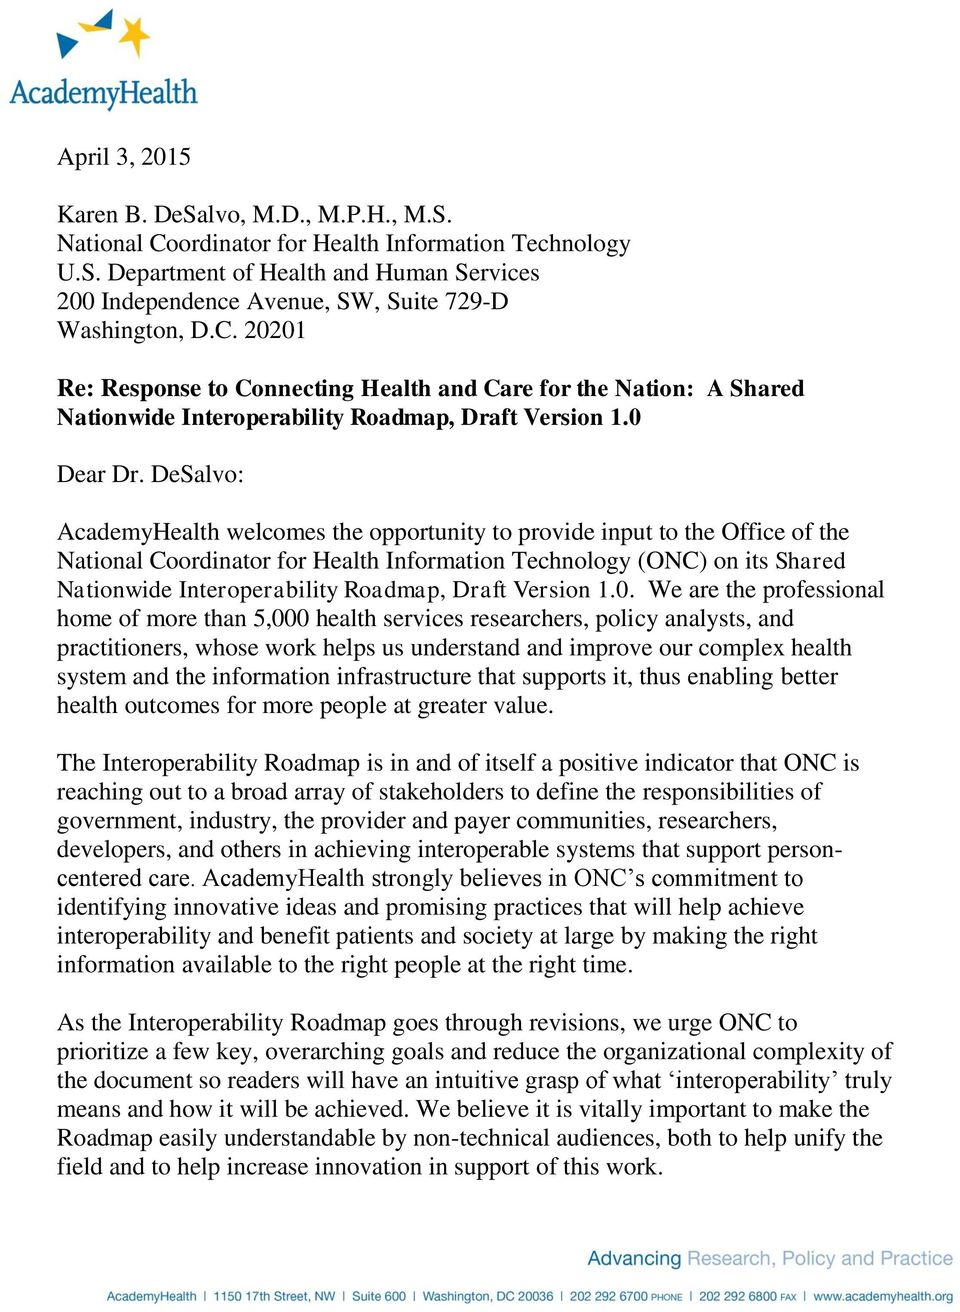 DeSalvo: AcademyHealth welcomes the opportunity to provide input to the Office of the National Coordinator for Health Information Technology (ONC) on its Shared Nationwide Interoperability Roadmap,